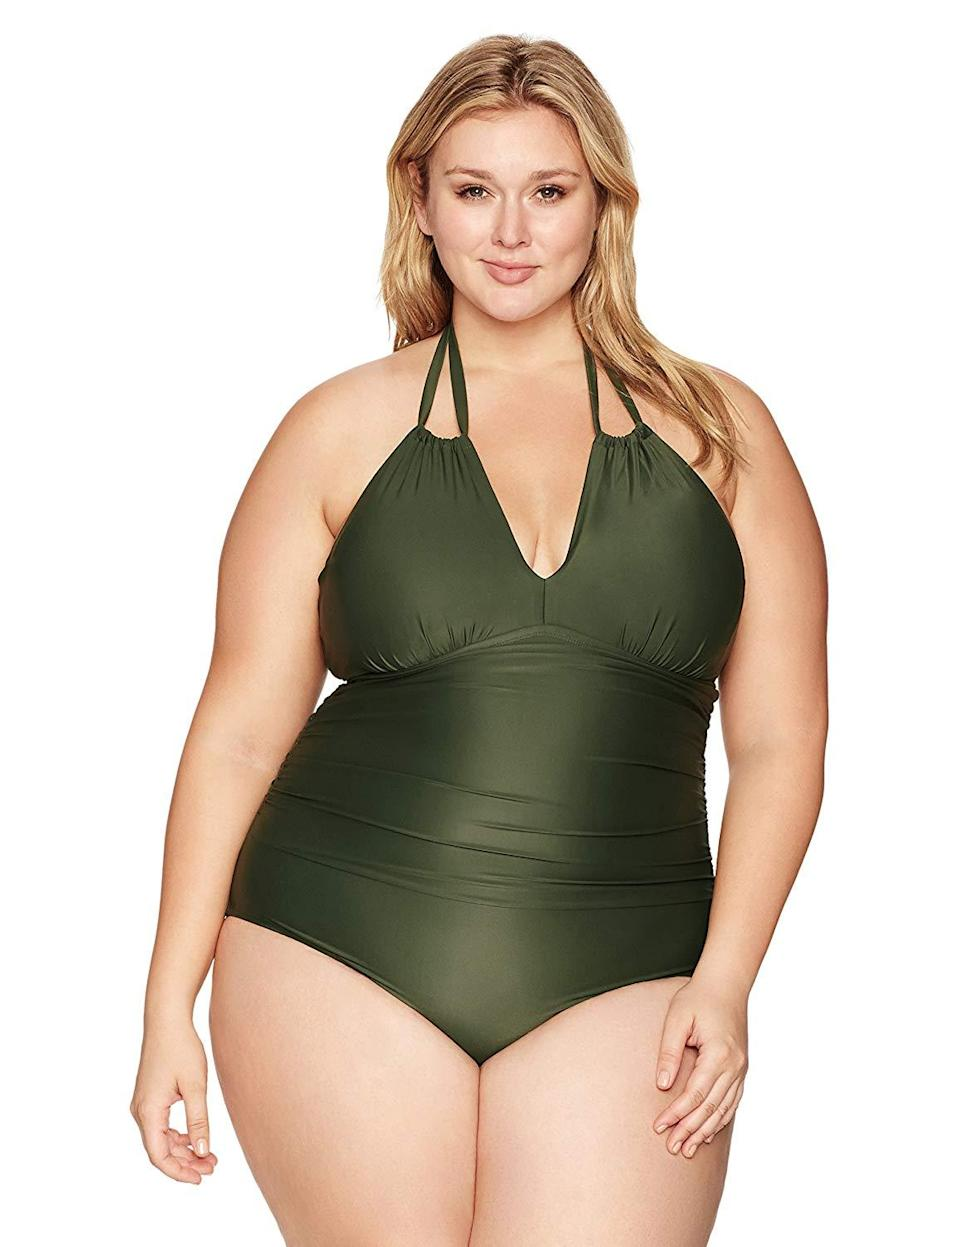 """<h2>Coastal Blue<br></h2><br>""""I love this bathing suit. I am very chesty and the bathing suit covers most of my chest with a little sexy side boob cleavage,"""" explained one reviewer of this almost 4-star reviewed maillot. """"I never felt confident in a bathing suit, but I do in this one. I won't be wearing any cover-ups.""""<br><br><strong>Coastal Blue</strong> Plus Size One Piece Swimsuit, $, available at <a href=""""https://www.amazon.com/Coastal-Blue-Strappy-Swimsuit-Roaring/dp/B06W2PHQQJ/ref=sr_1_13"""" rel=""""nofollow noopener"""" target=""""_blank"""" data-ylk=""""slk:Amazon"""" class=""""link rapid-noclick-resp"""">Amazon</a>"""